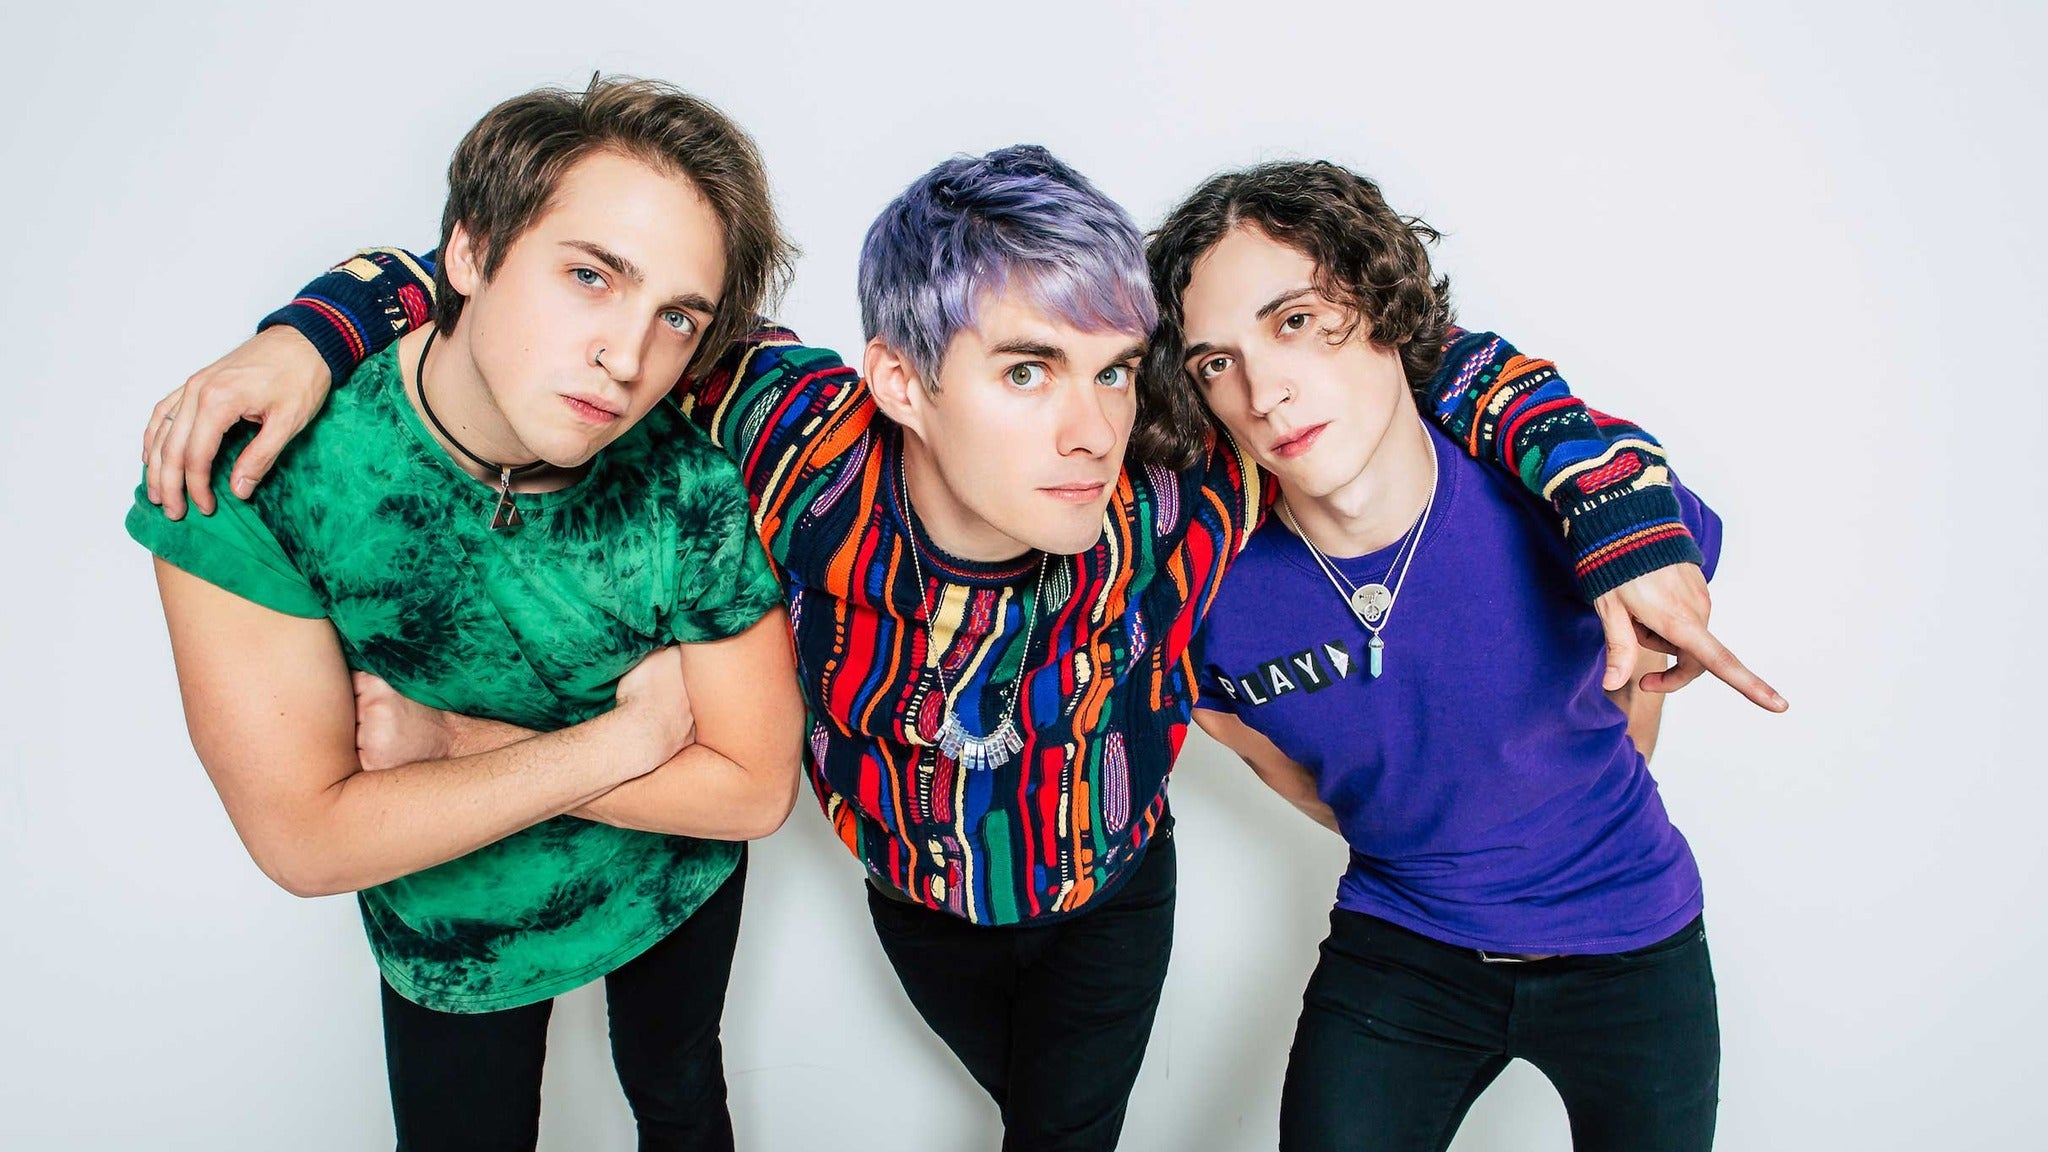 Waterparks at Ace of Spades